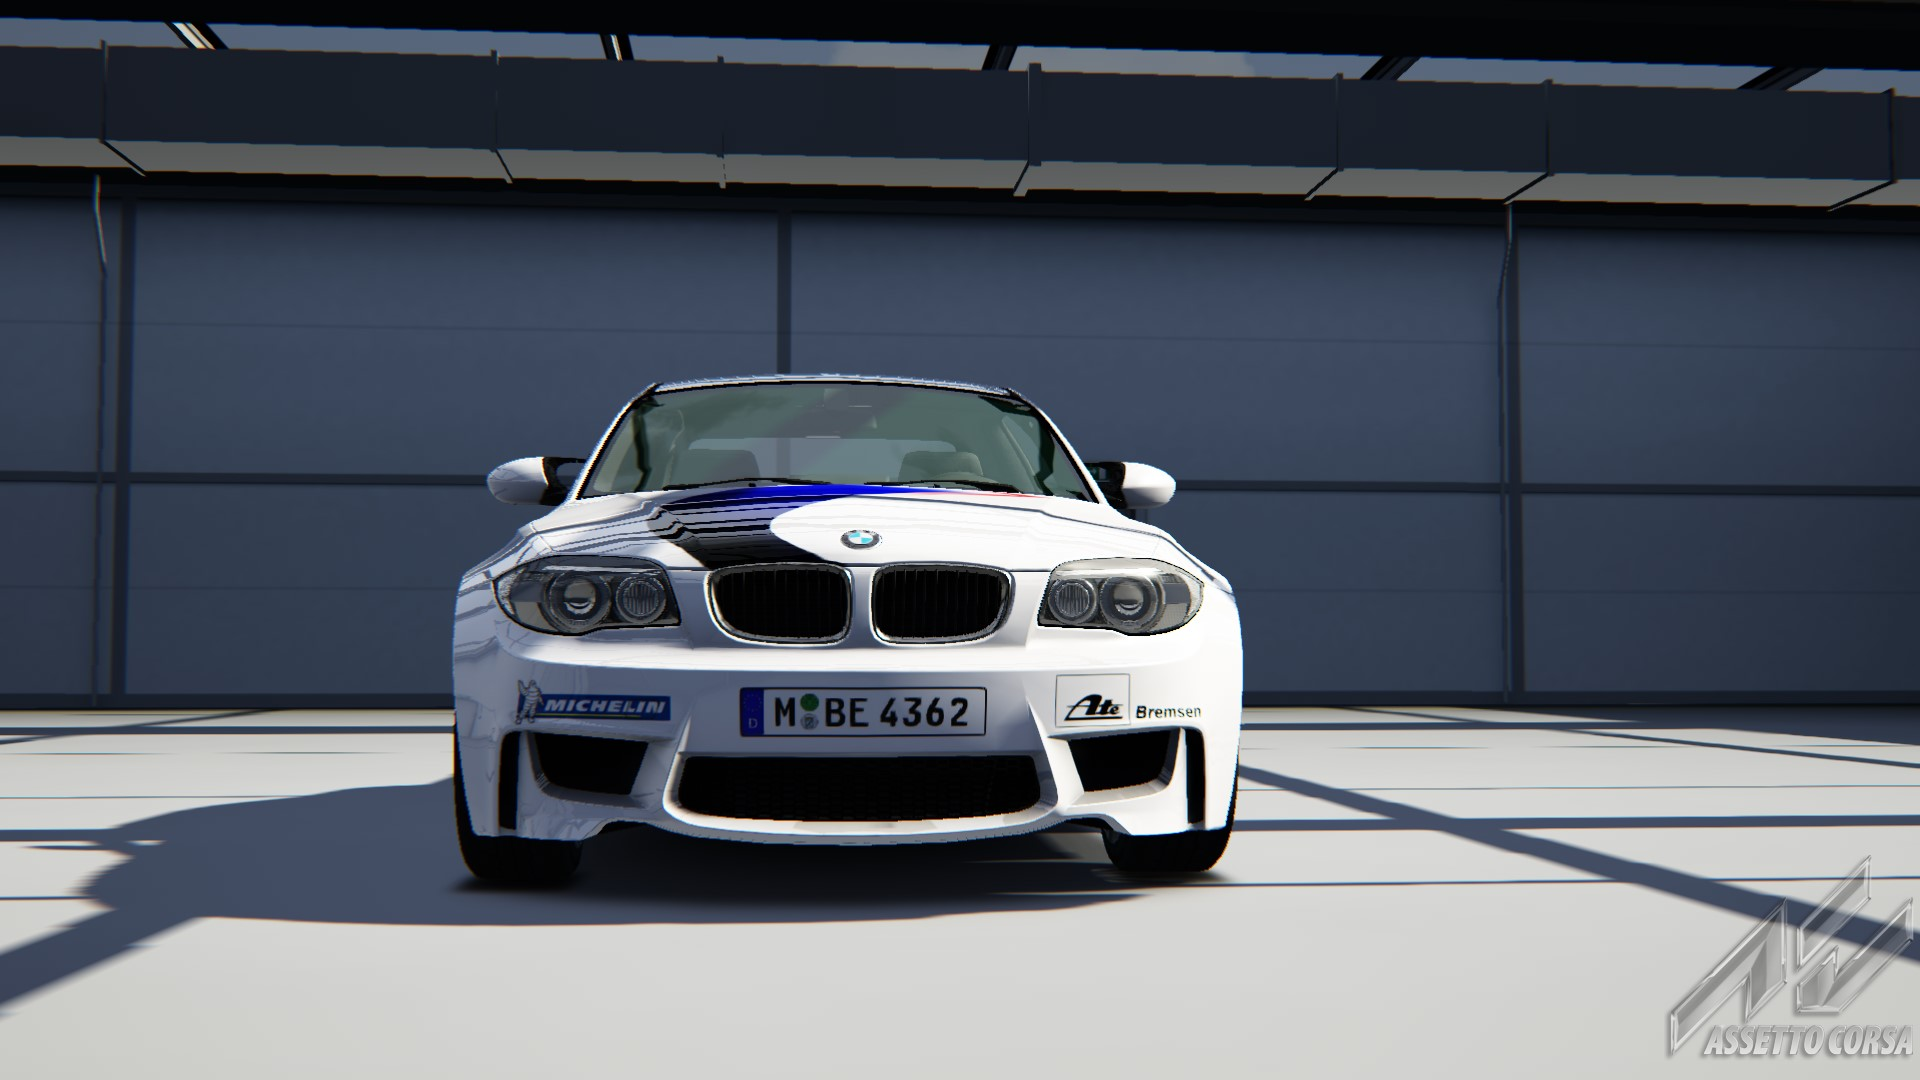 Showroom_bmw_1m_18-8-2014-13-55-20.jpg